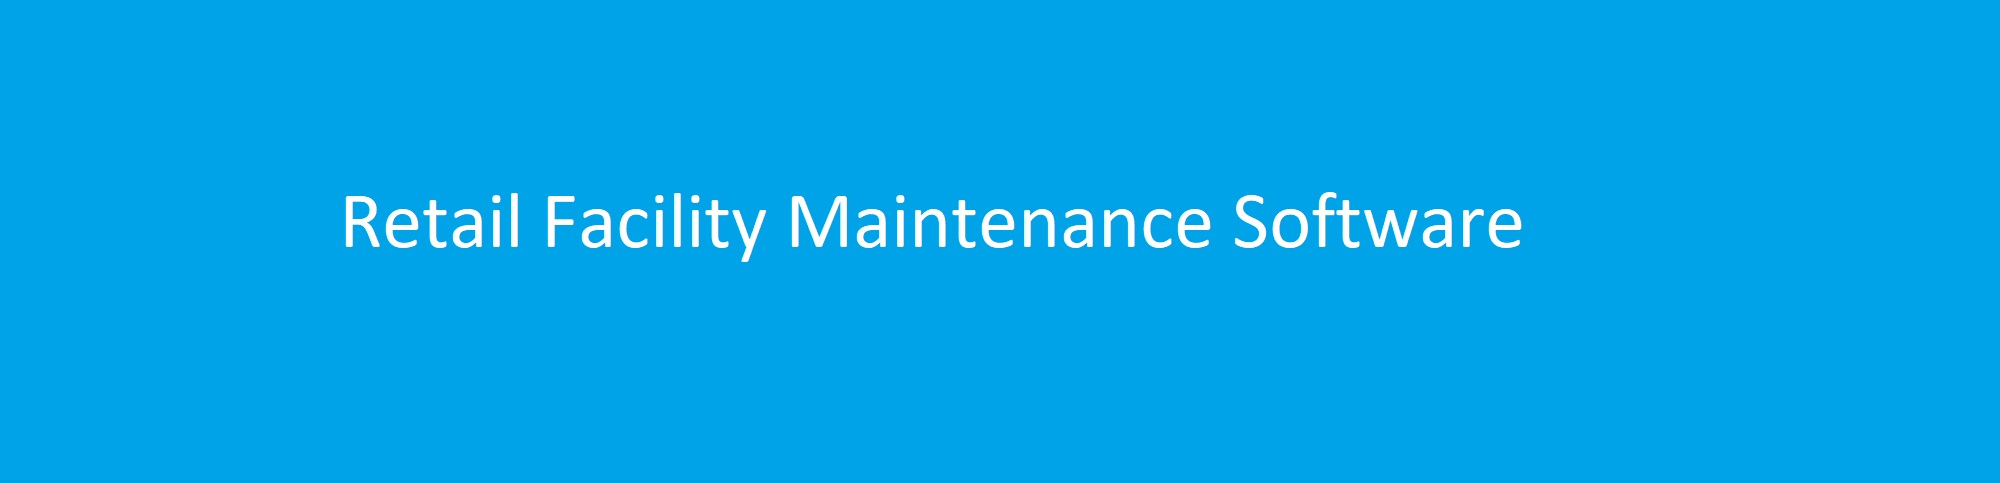 EZmaintain.com - Healthcare Facility Maintenance Software